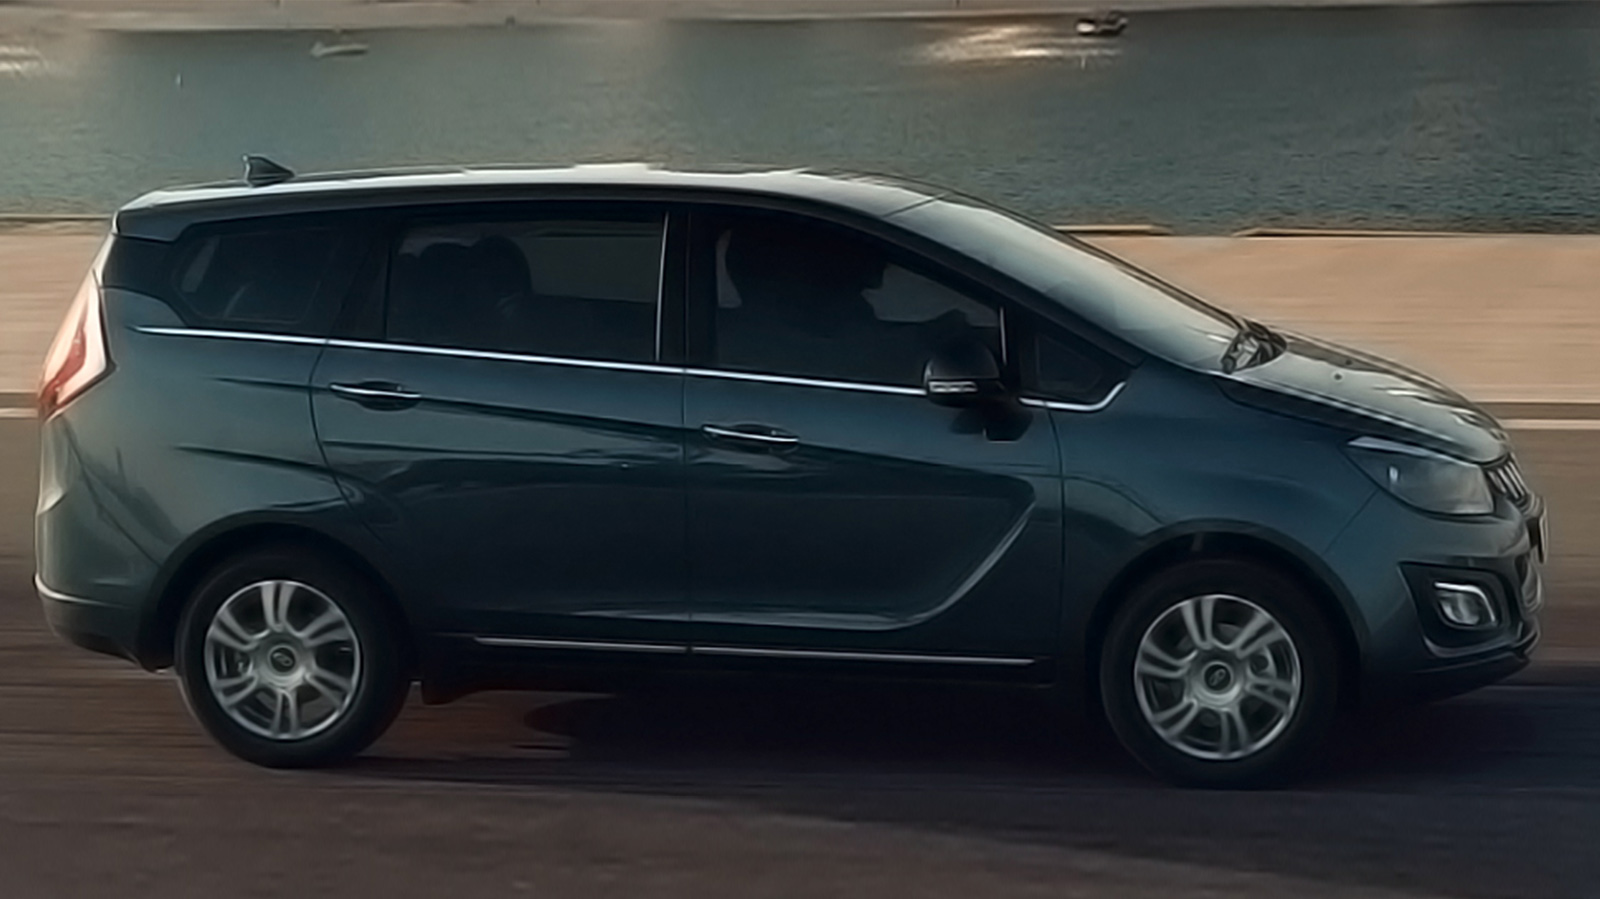 Mahindra Marazzo Comparison with Top 3 Rivals: Which One Should You Buy?